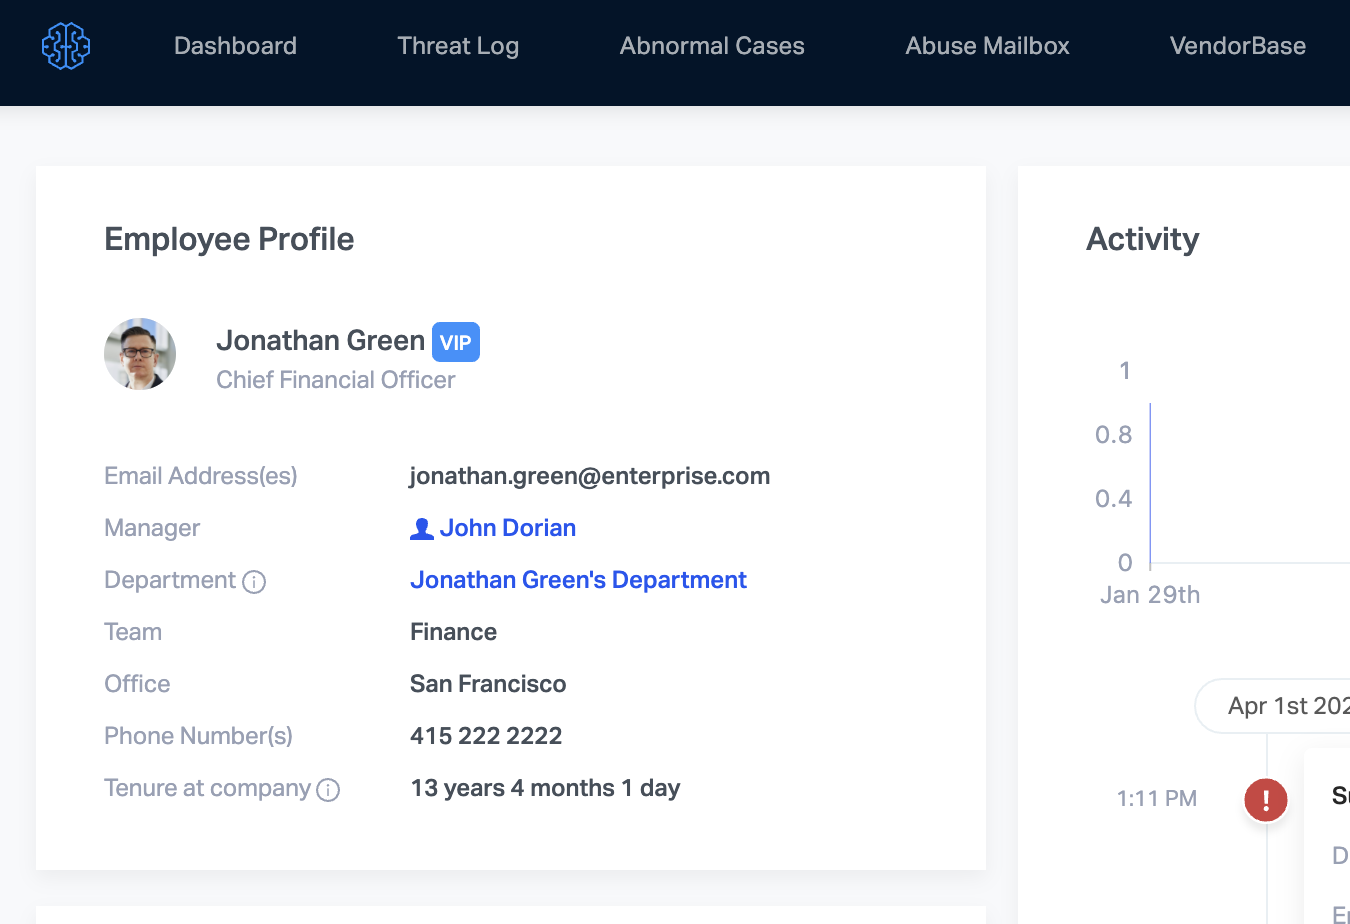 People-driven profile view of each employee in your organization